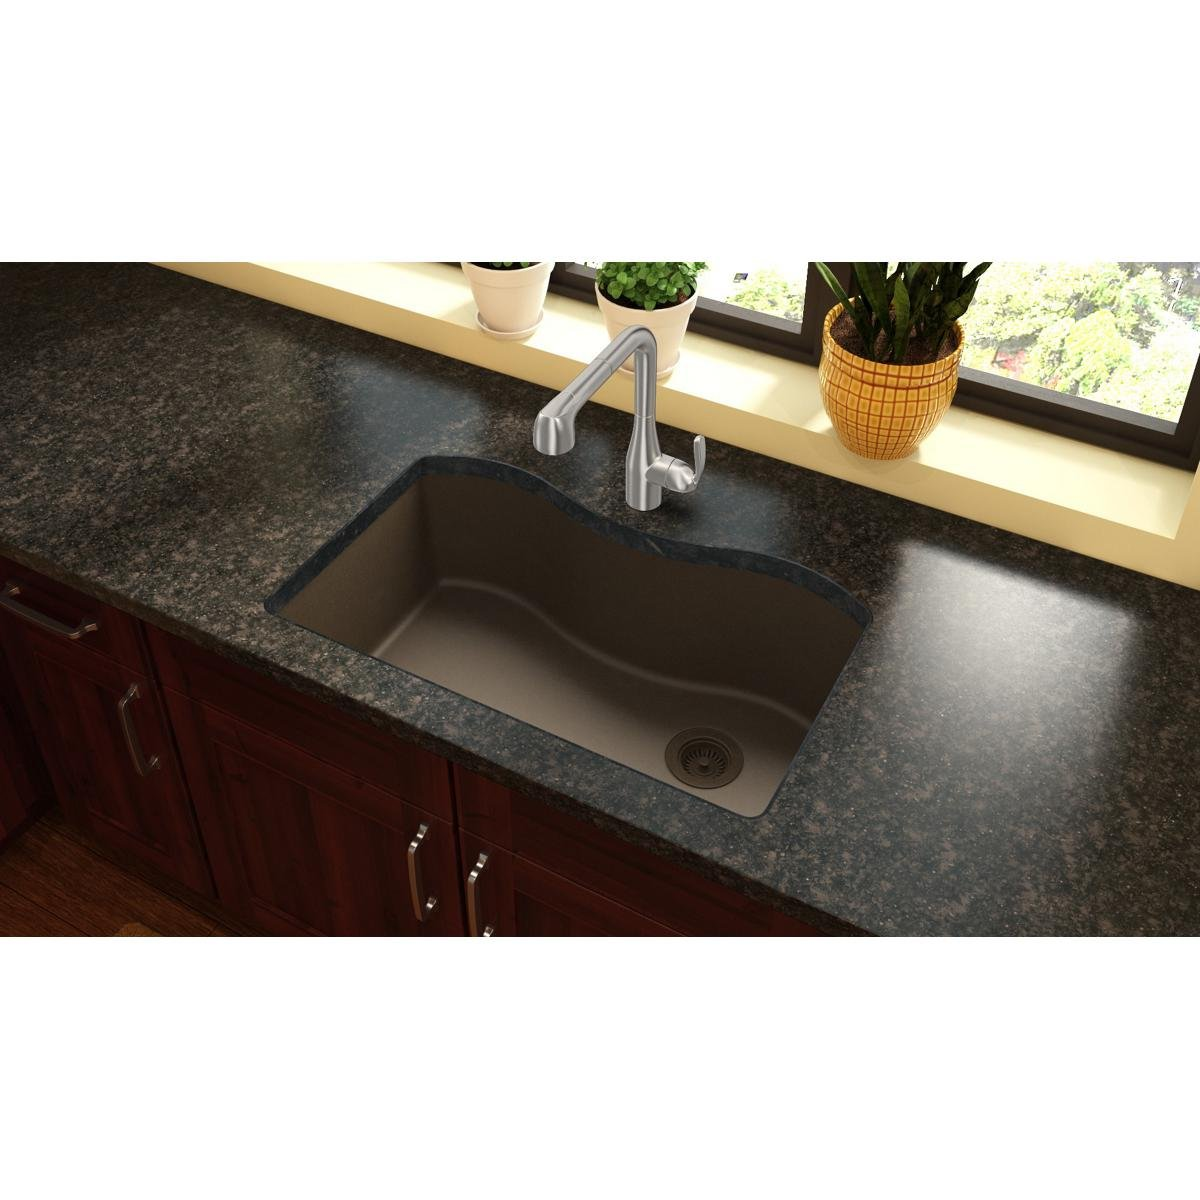 Elkay Quartz Classic Mocha Single Bowl Undermount Sink Single Bowl Sinks  Amazoncom